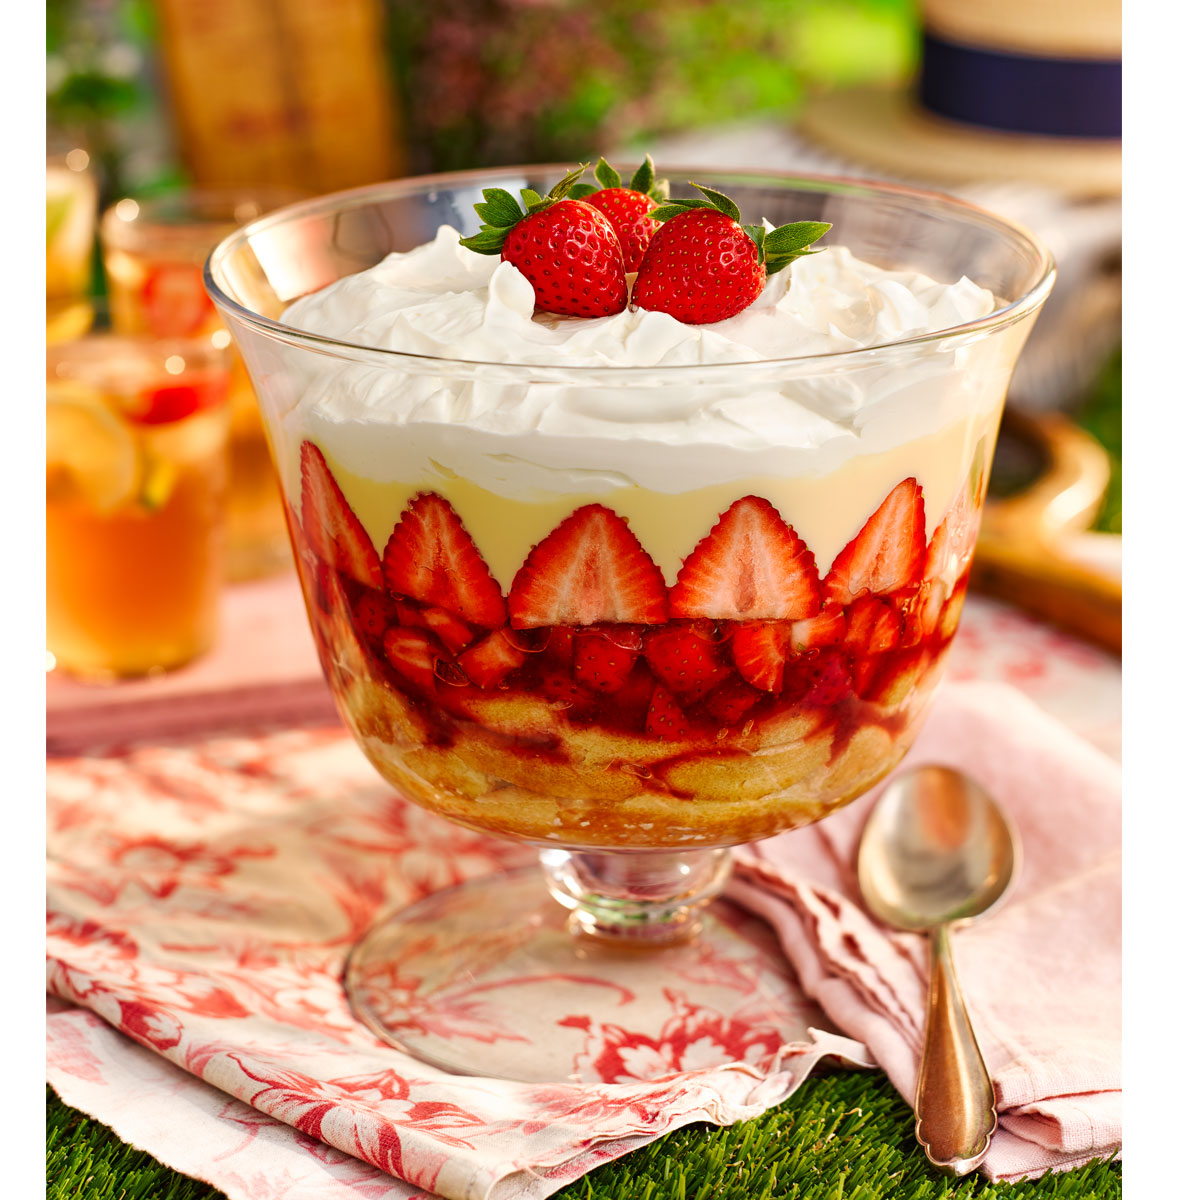 Top 10 Trifle Recipes: Pimm's Trifle Recipe